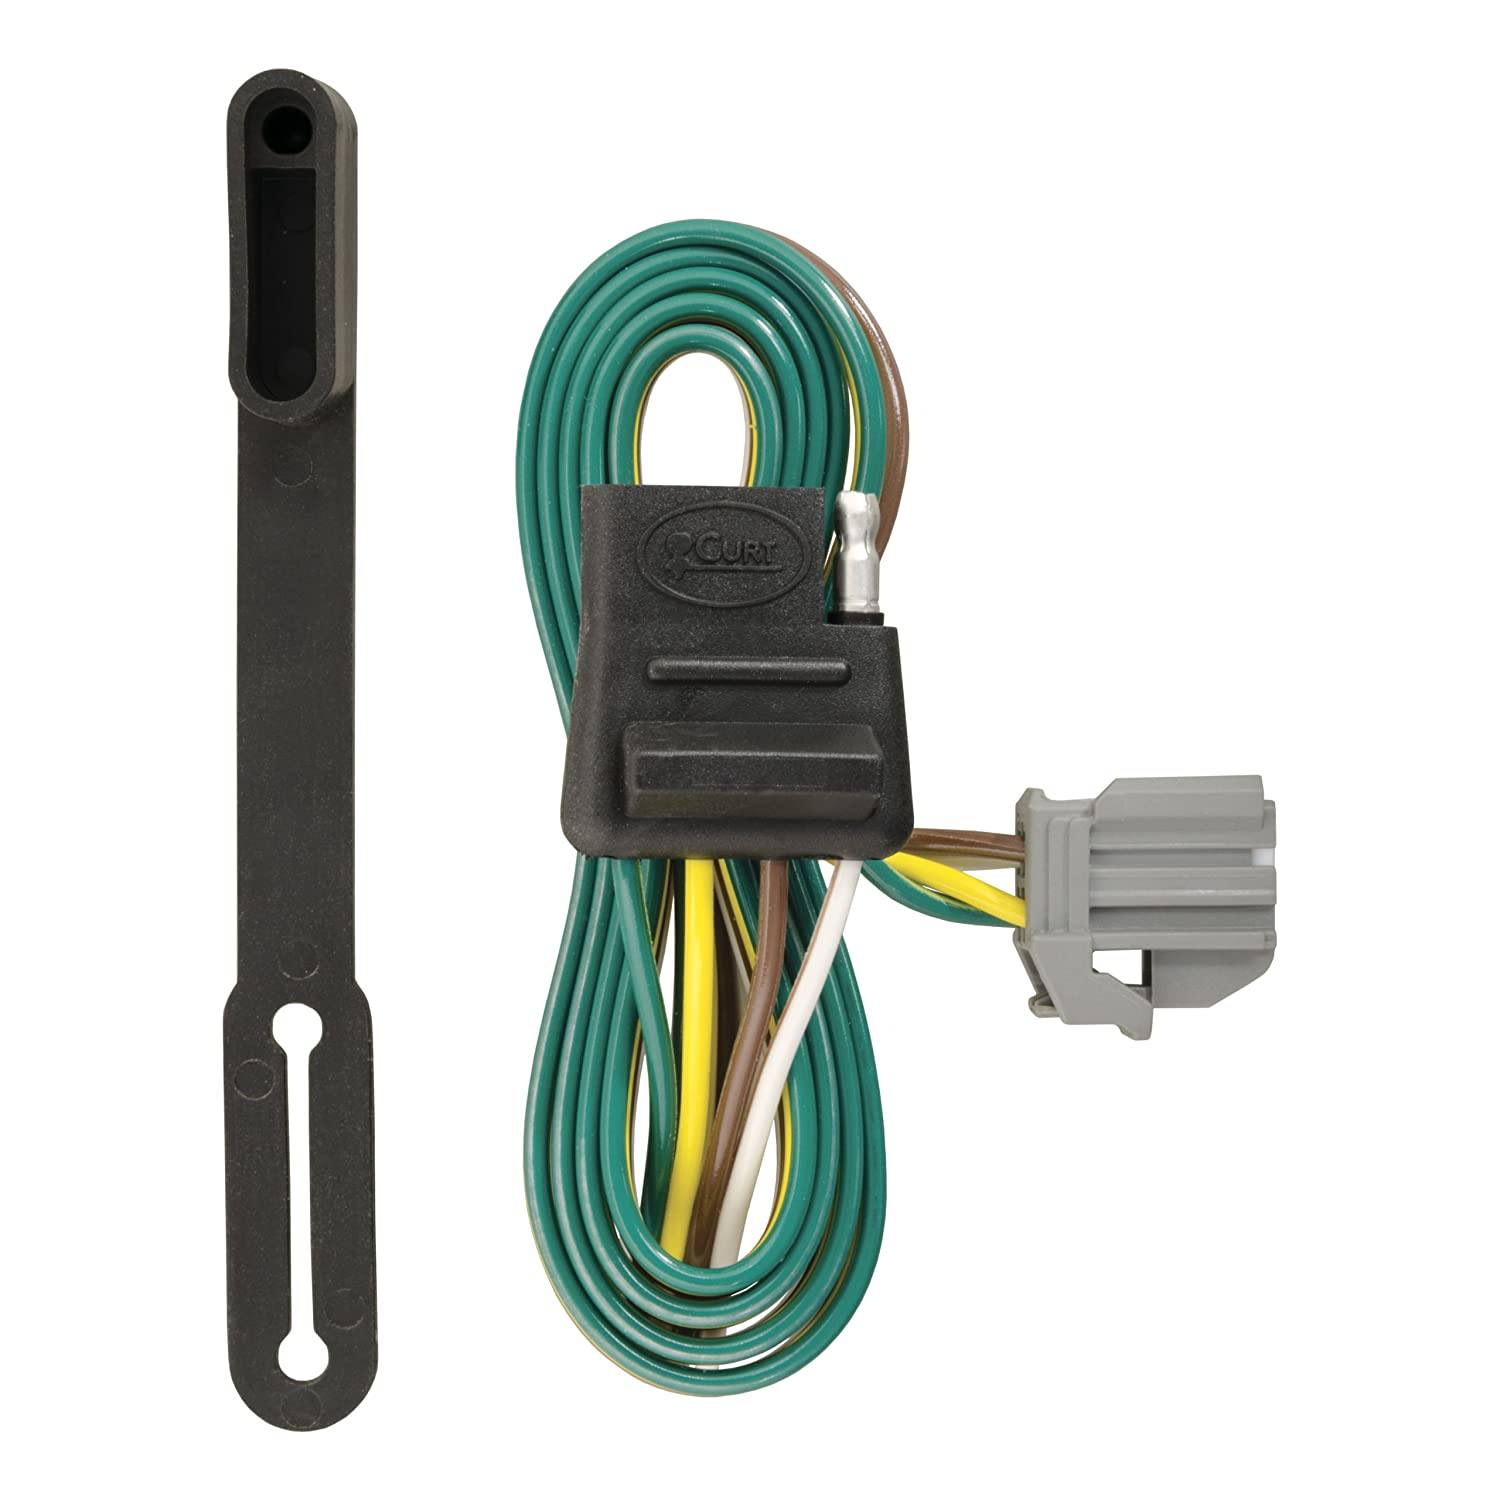 81GHXtrr8 L._SL1500_ amazon com curt 56210 custom wiring connector automotive Chevy Engine Wiring Harness at webbmarketing.co